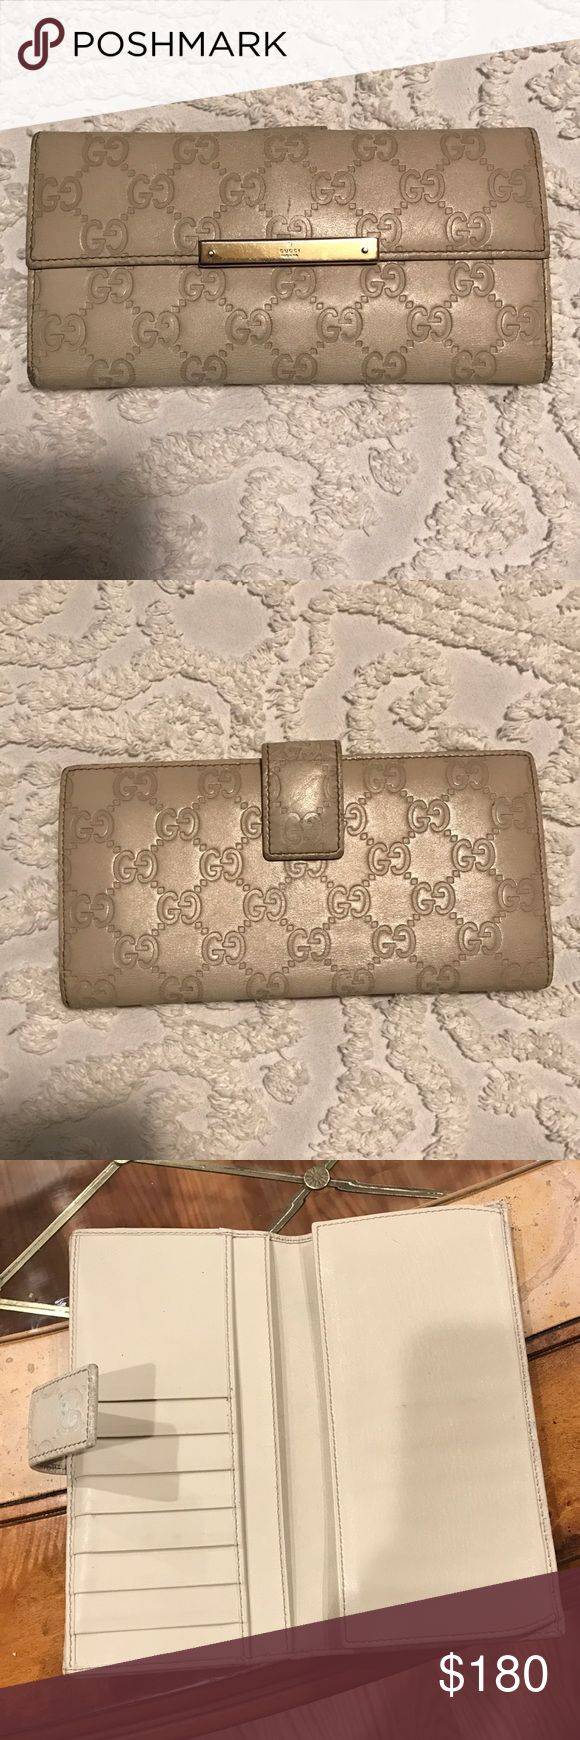 Authentic Gucci wallet!  Cream Gucci wallet. Great price Gucci Bags Wallets